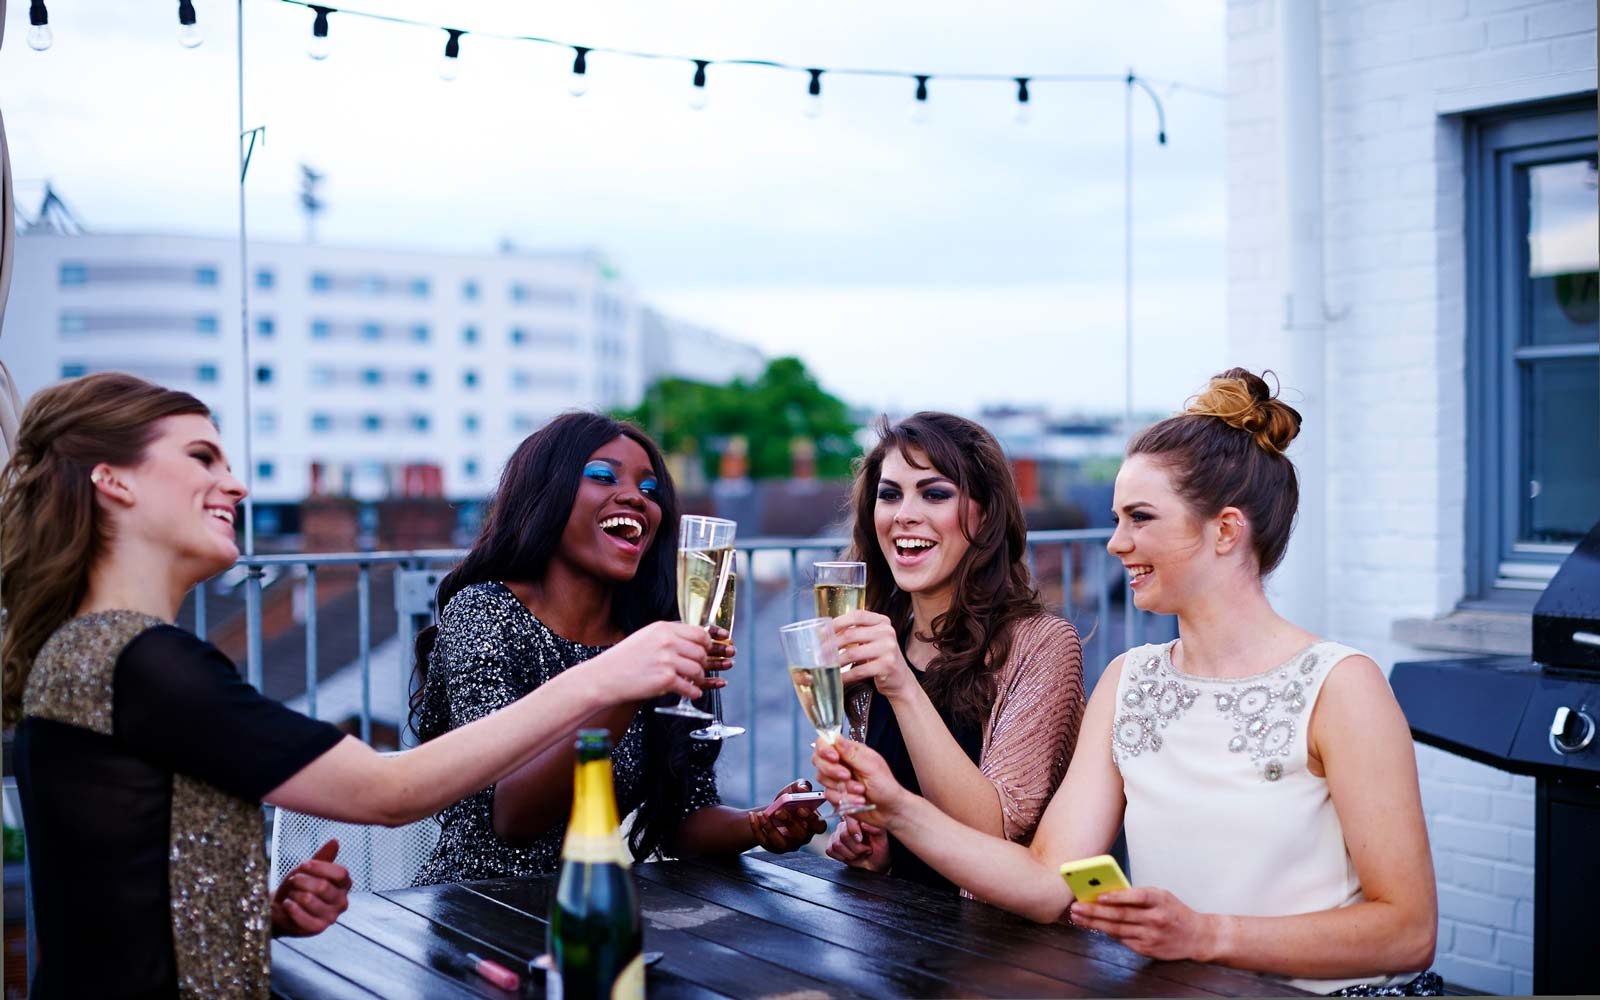 Women Should Go Out With Their Girlfriends Twice a Week, According to Research